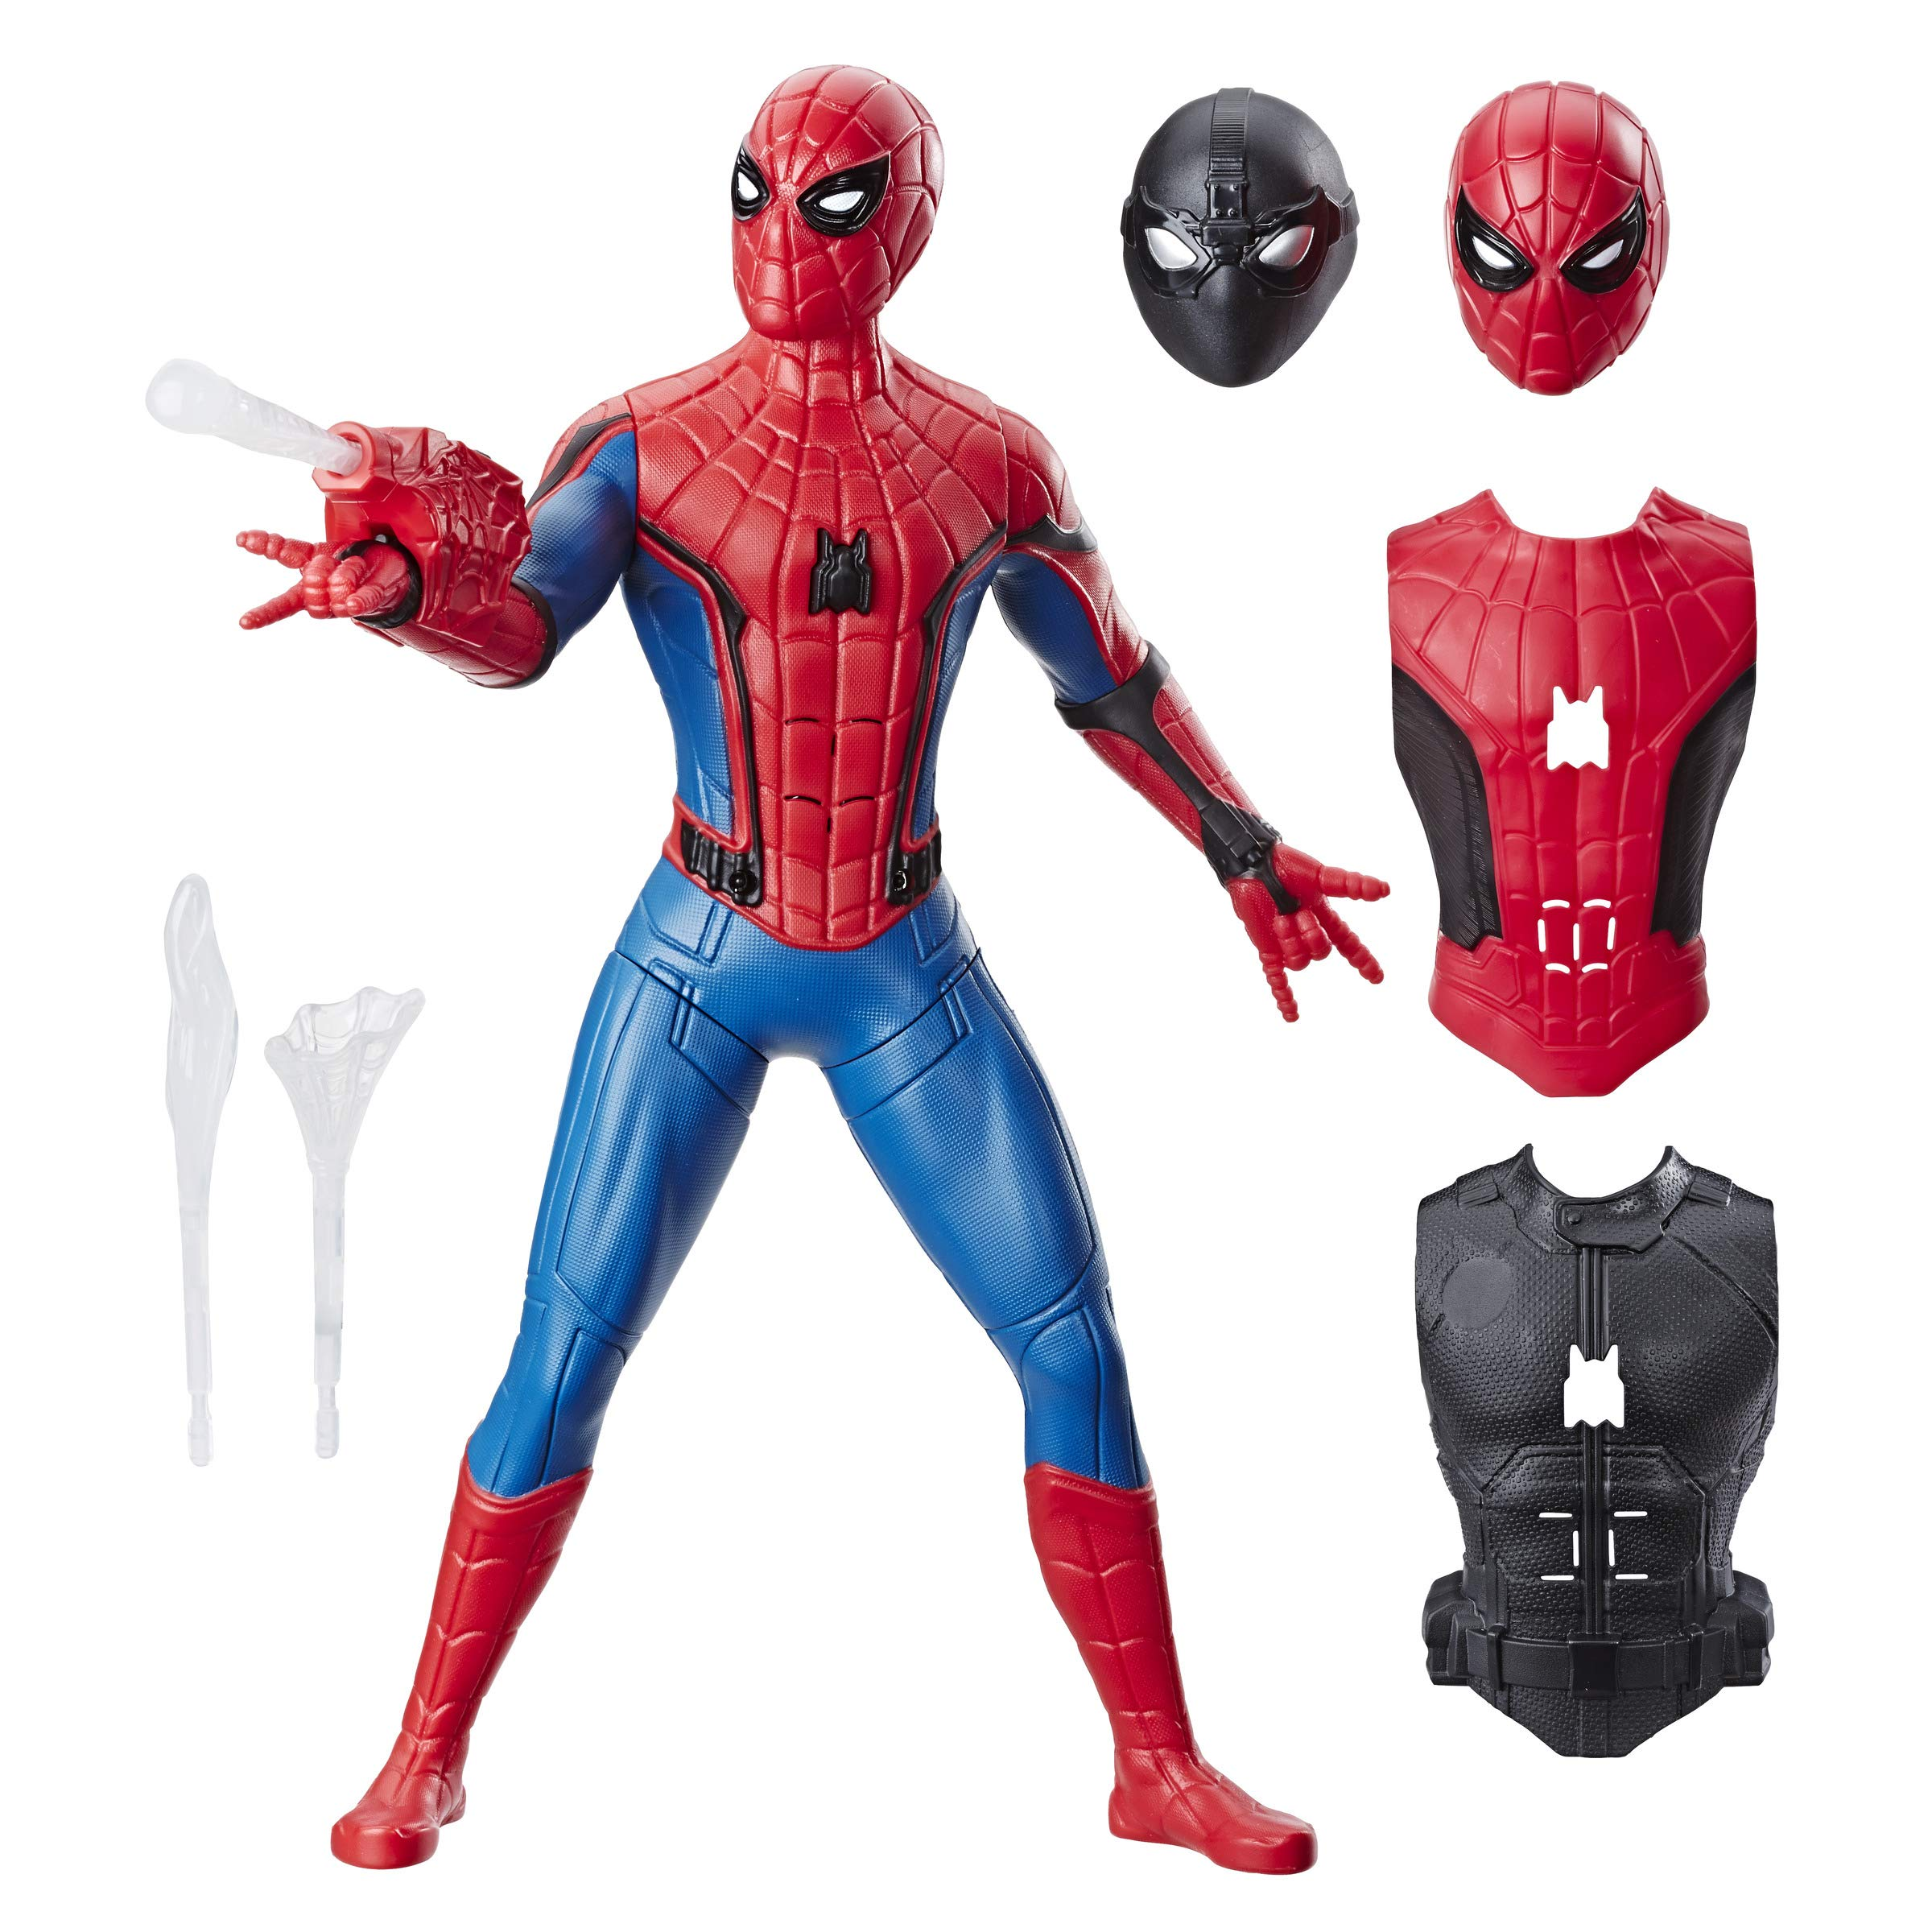 Amazon Com Spider Man Far From Home Deluxe 13 Inch Scale Web Gear Action Figure With Sound Fx Suit Upgrades And Web Blaster Accessory Toys Games